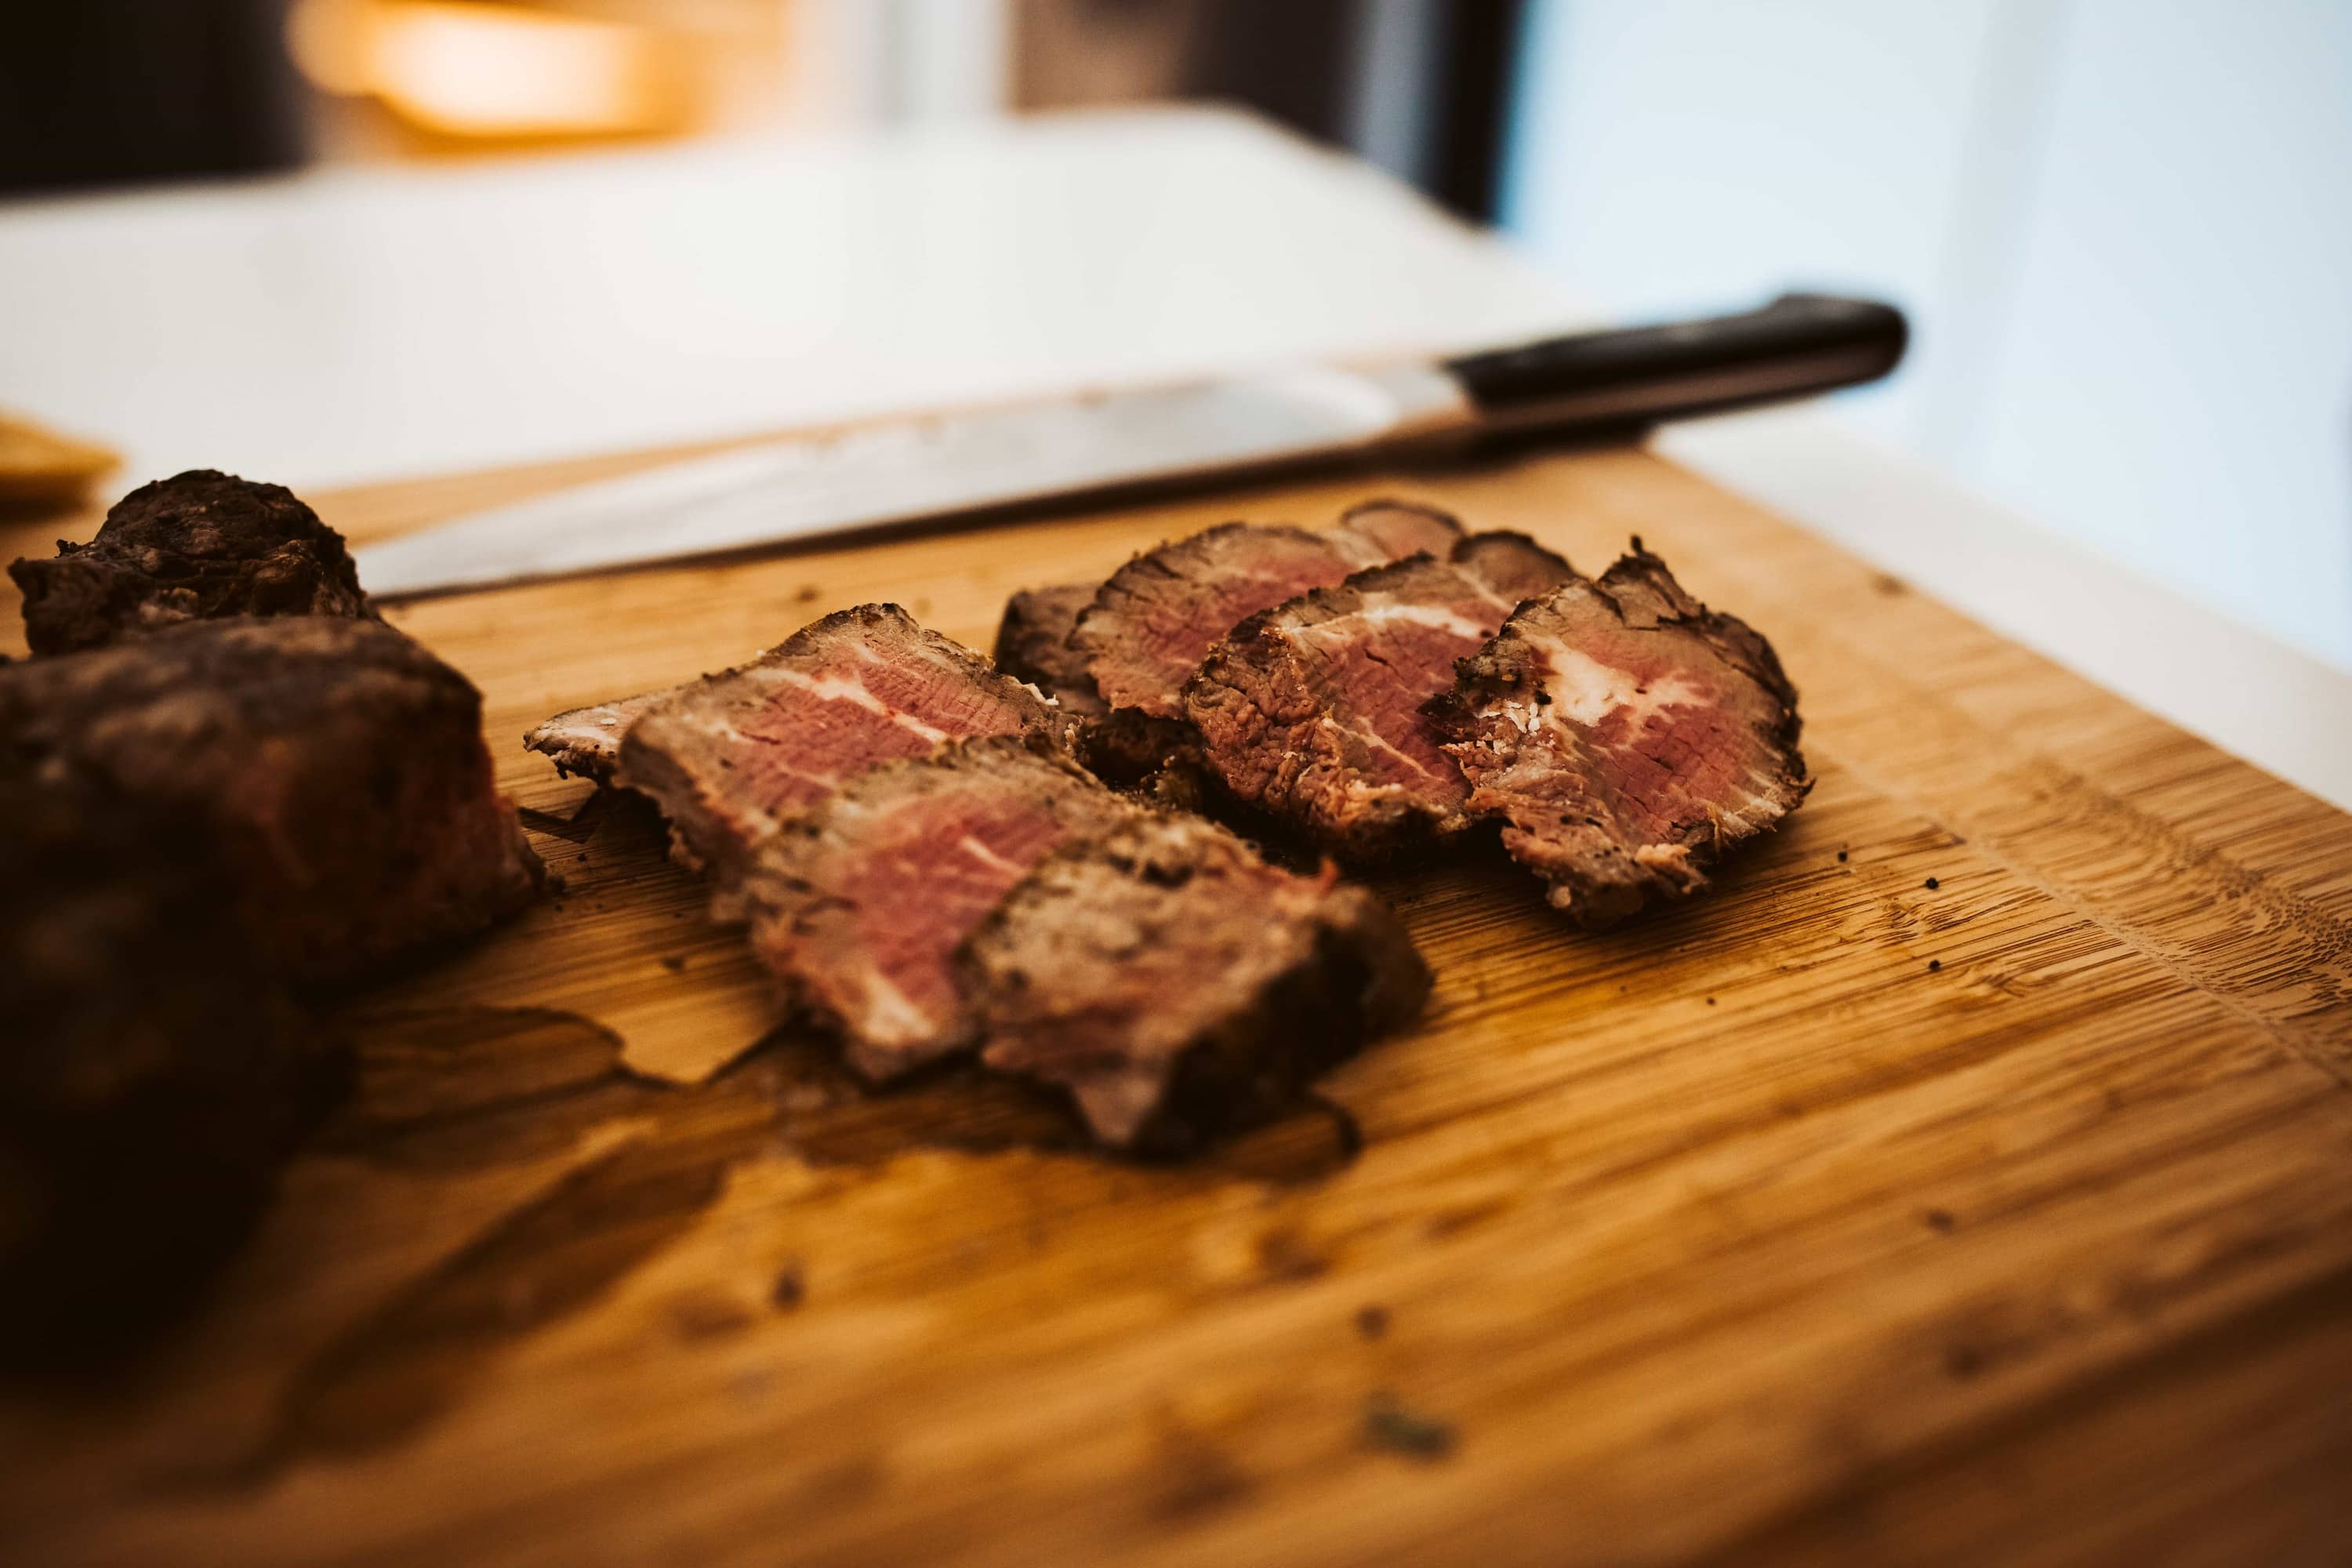 steak on cutting board